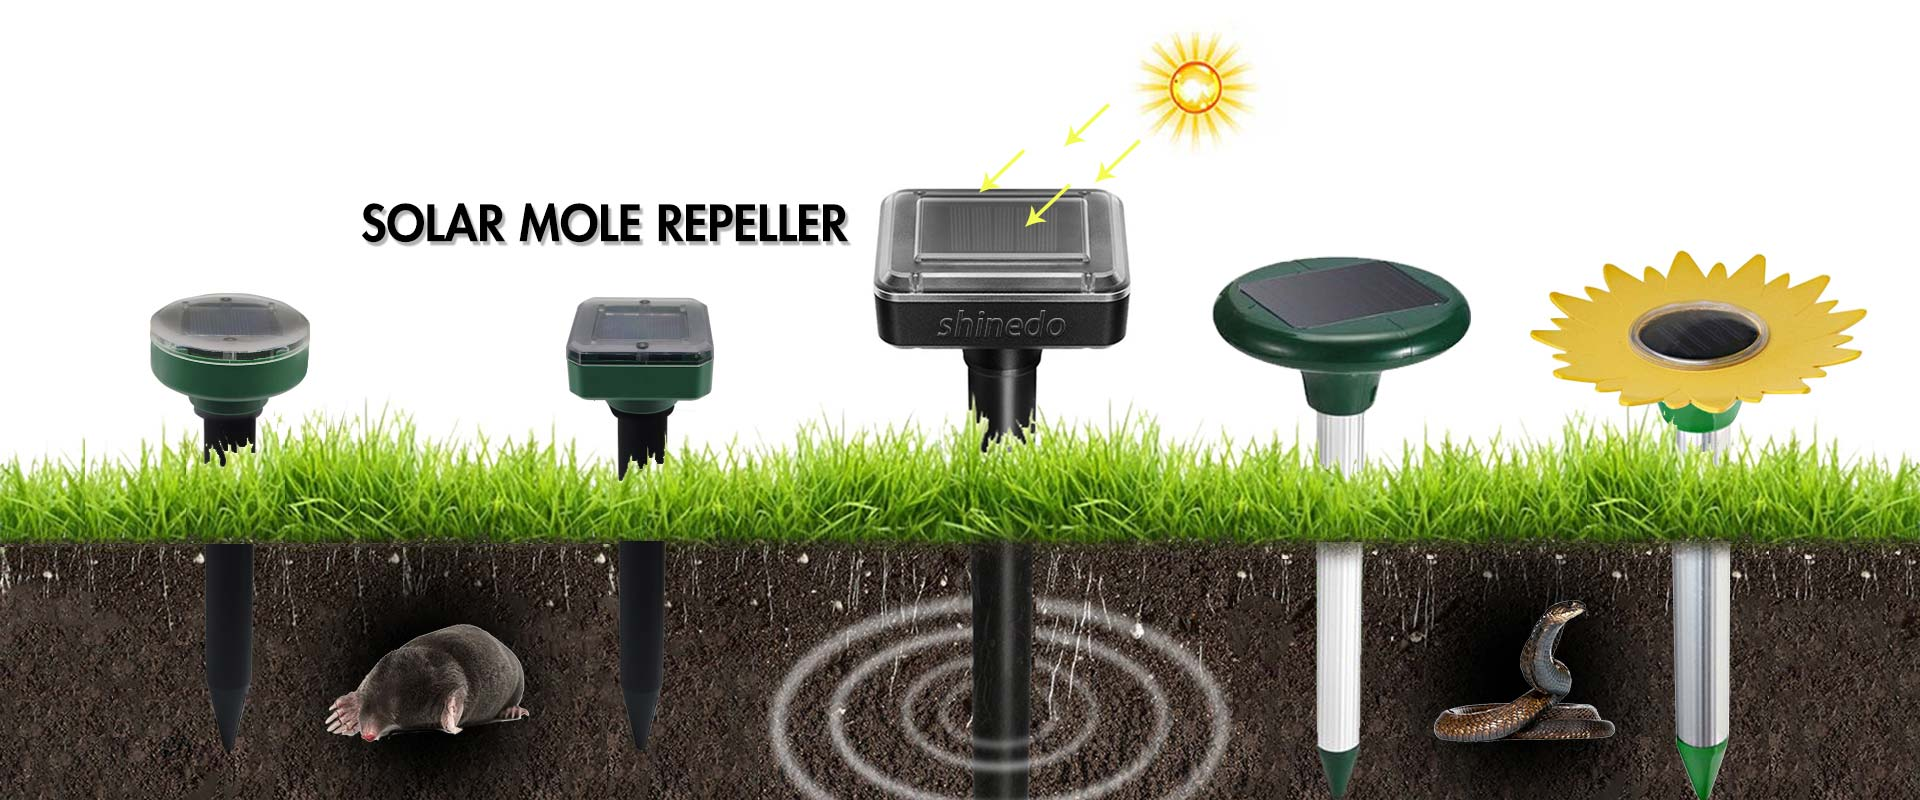 Solar Mole Repeller Supplier China